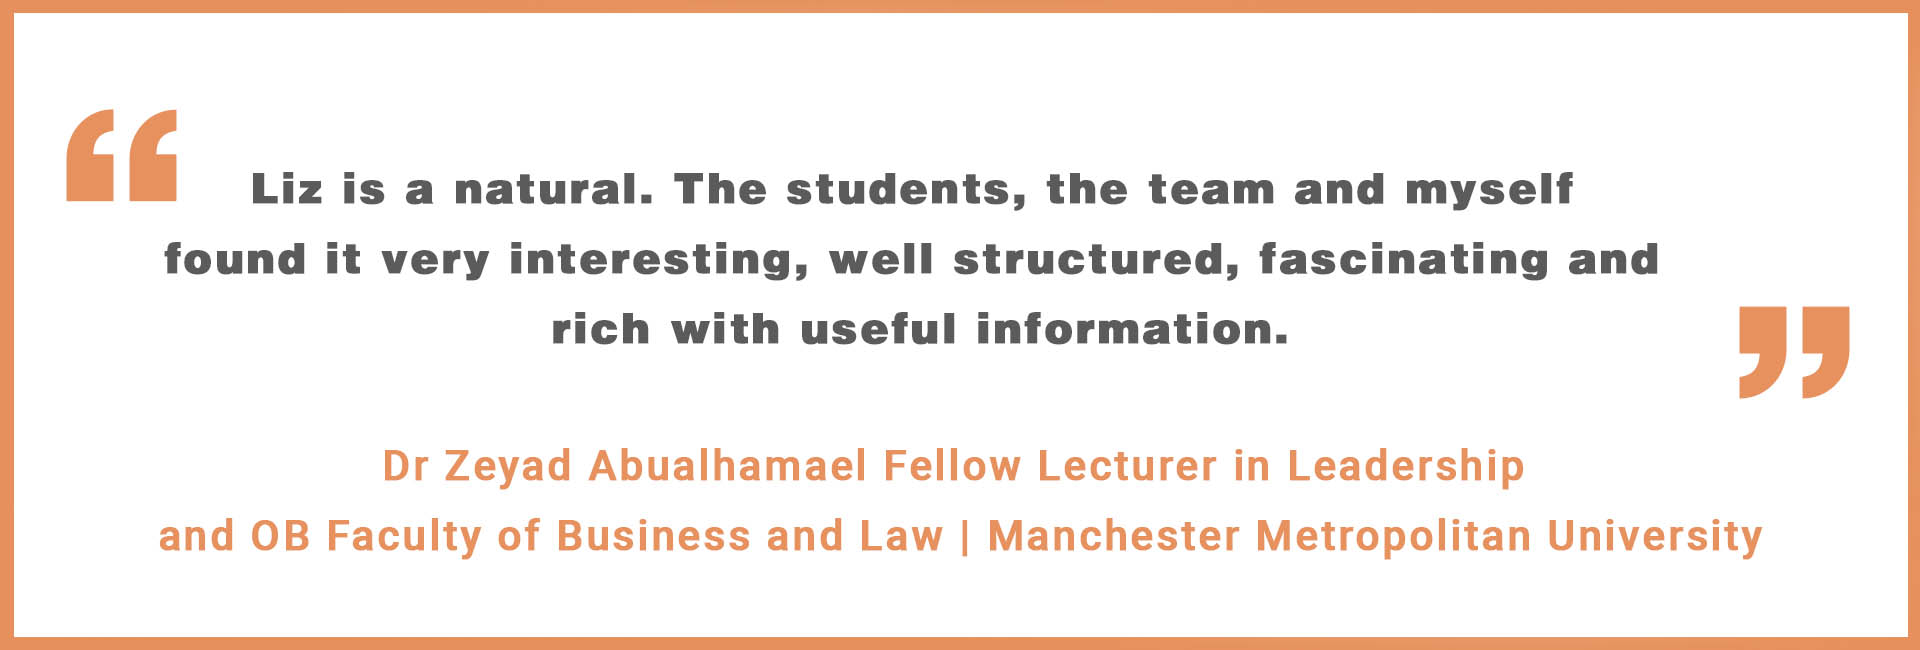 Quotes Dr Zeyad Abualhamael Fellow Lecturer in Leadership and OB Faculty